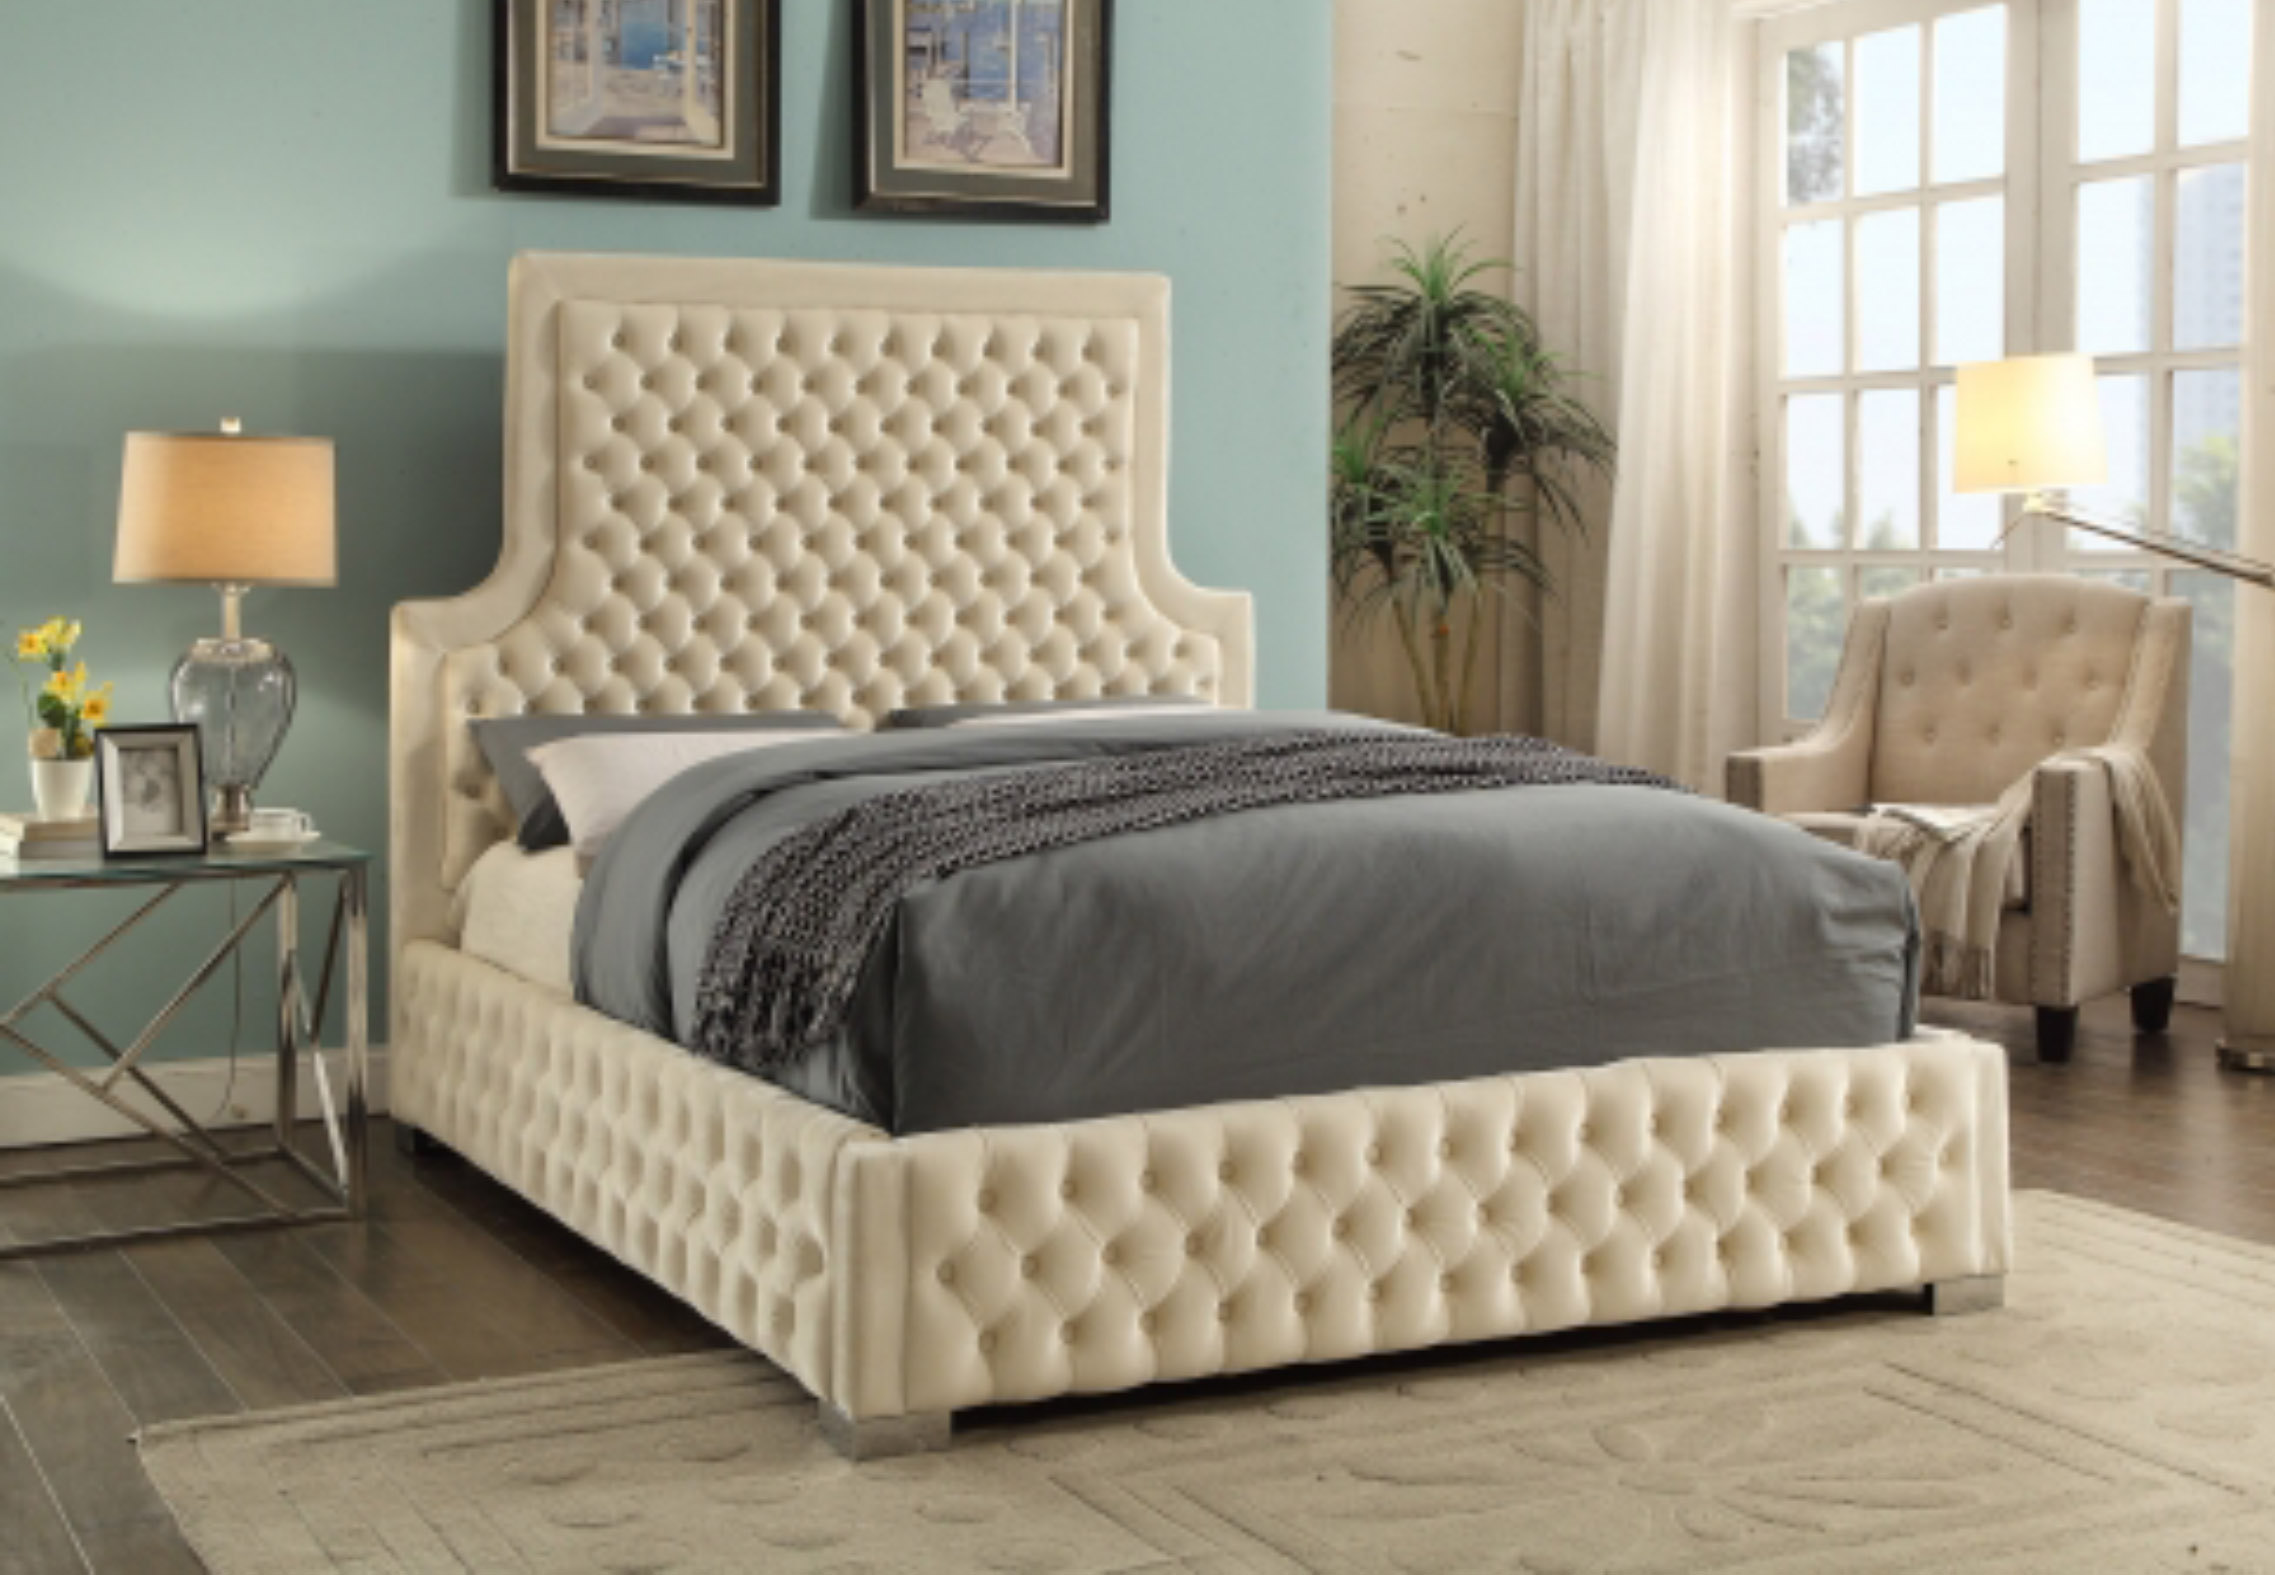 BEDS-INT-5602